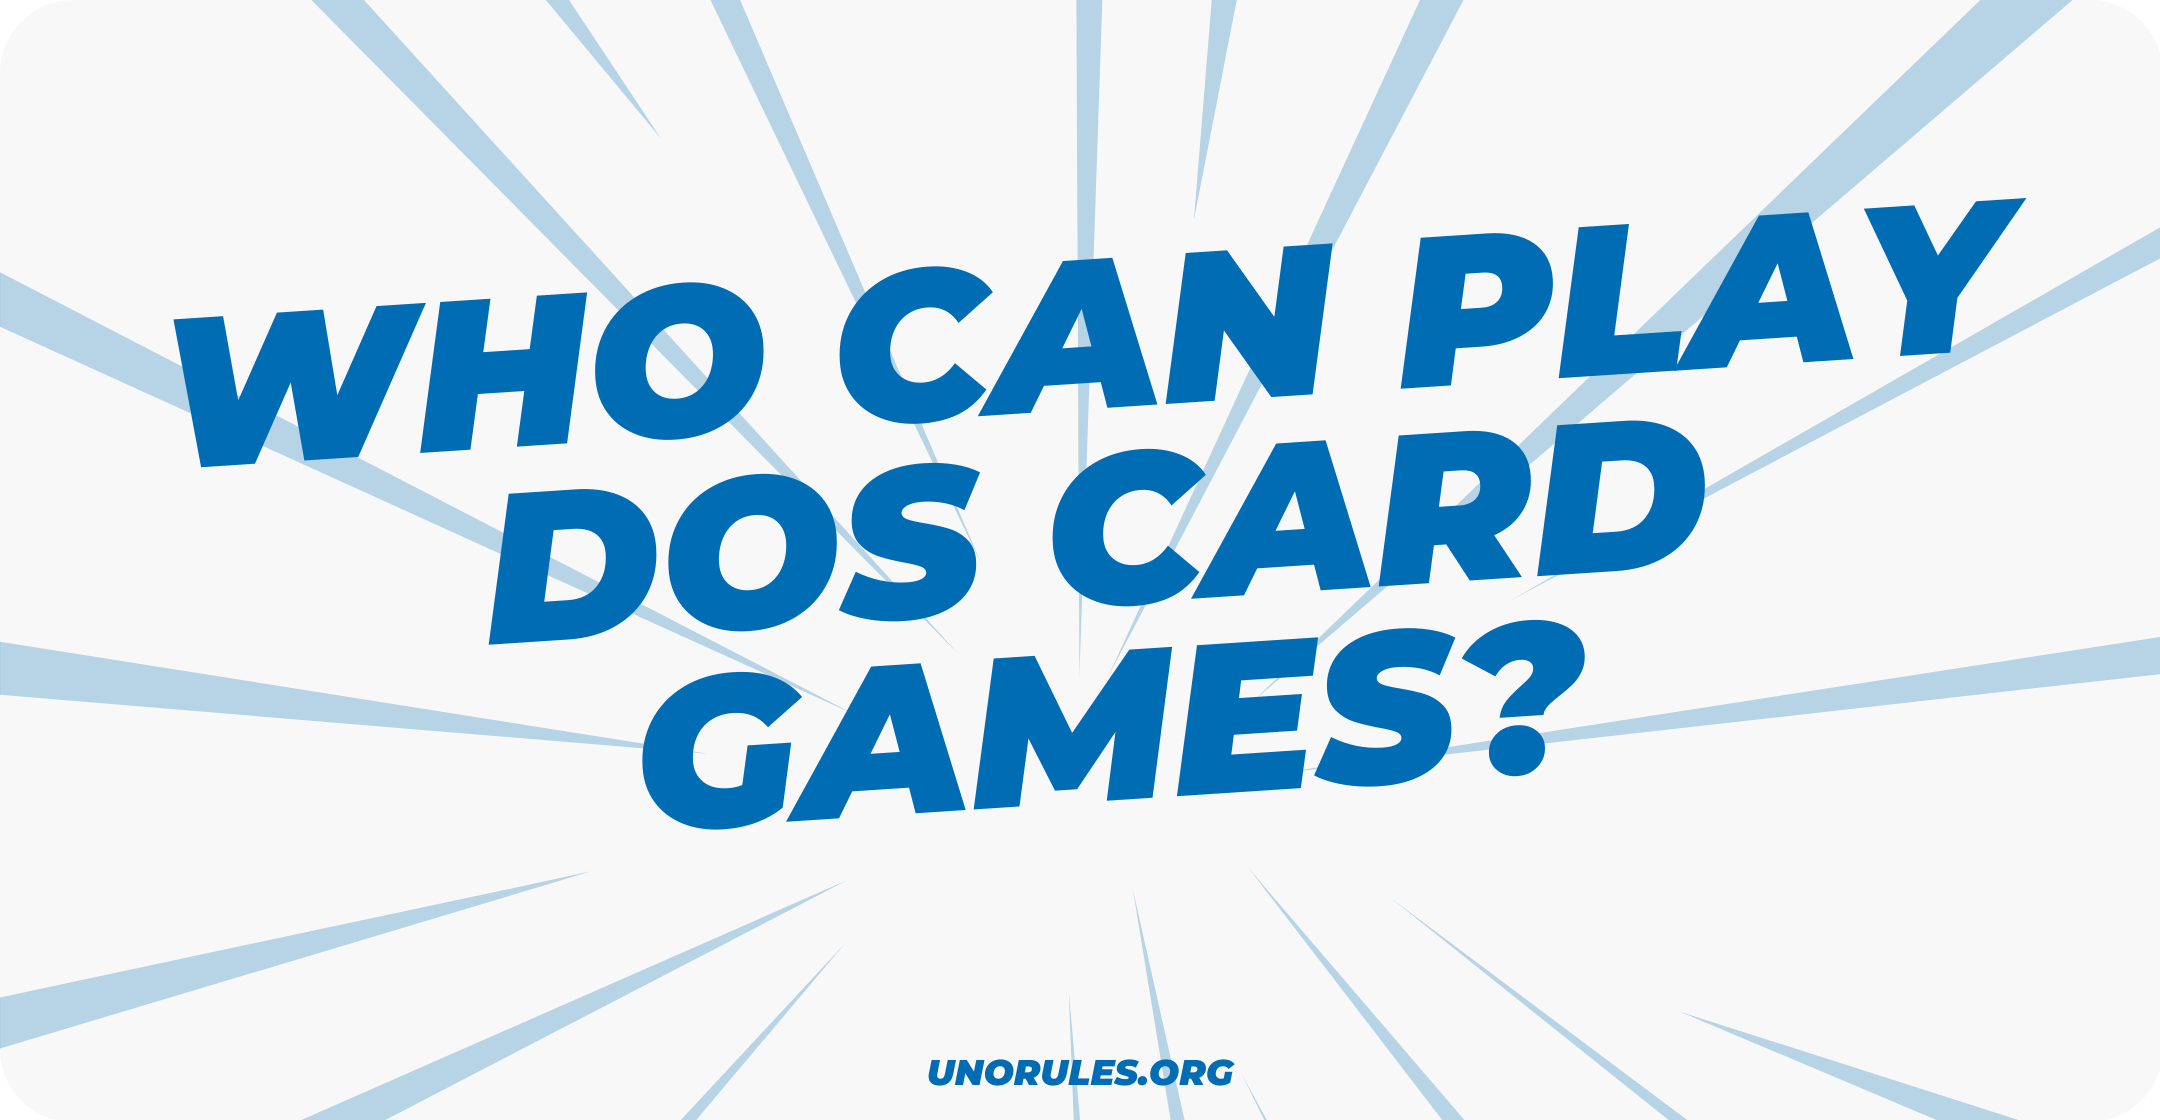 Who can play Dos card games